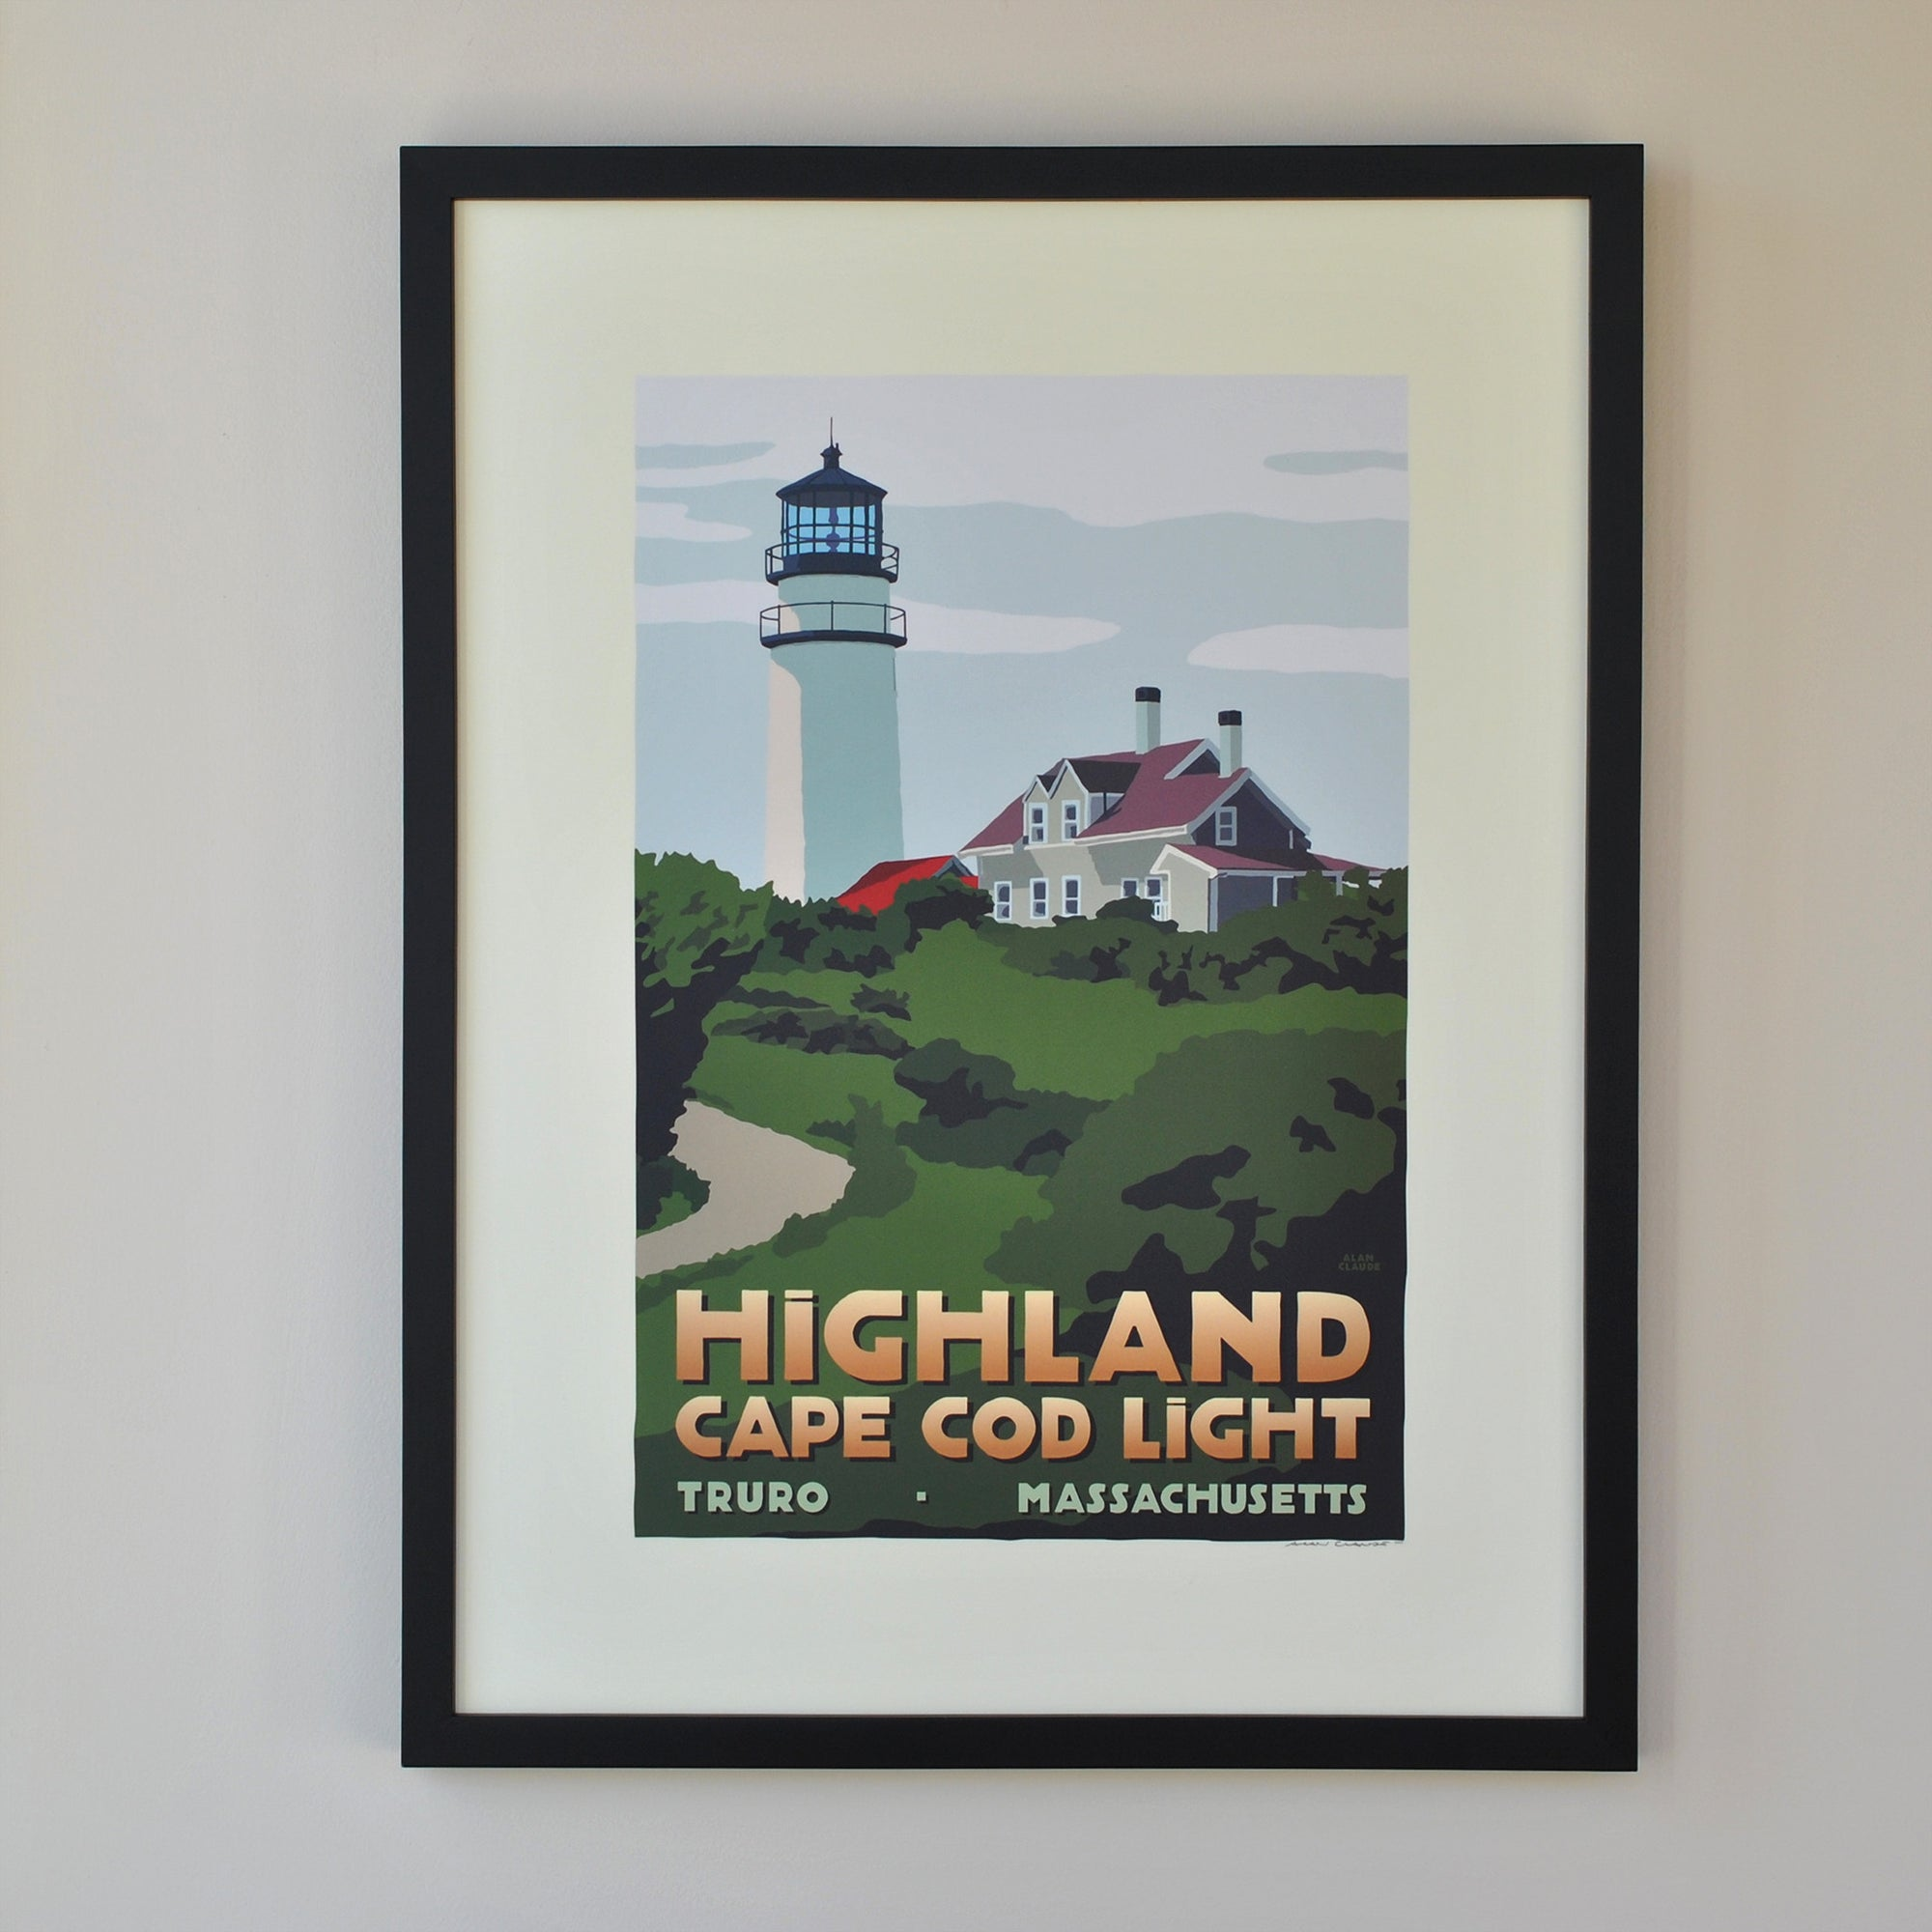 "Highland Light Art Print 18"" x 24"" Framed Travel Poster - Massachusetts"